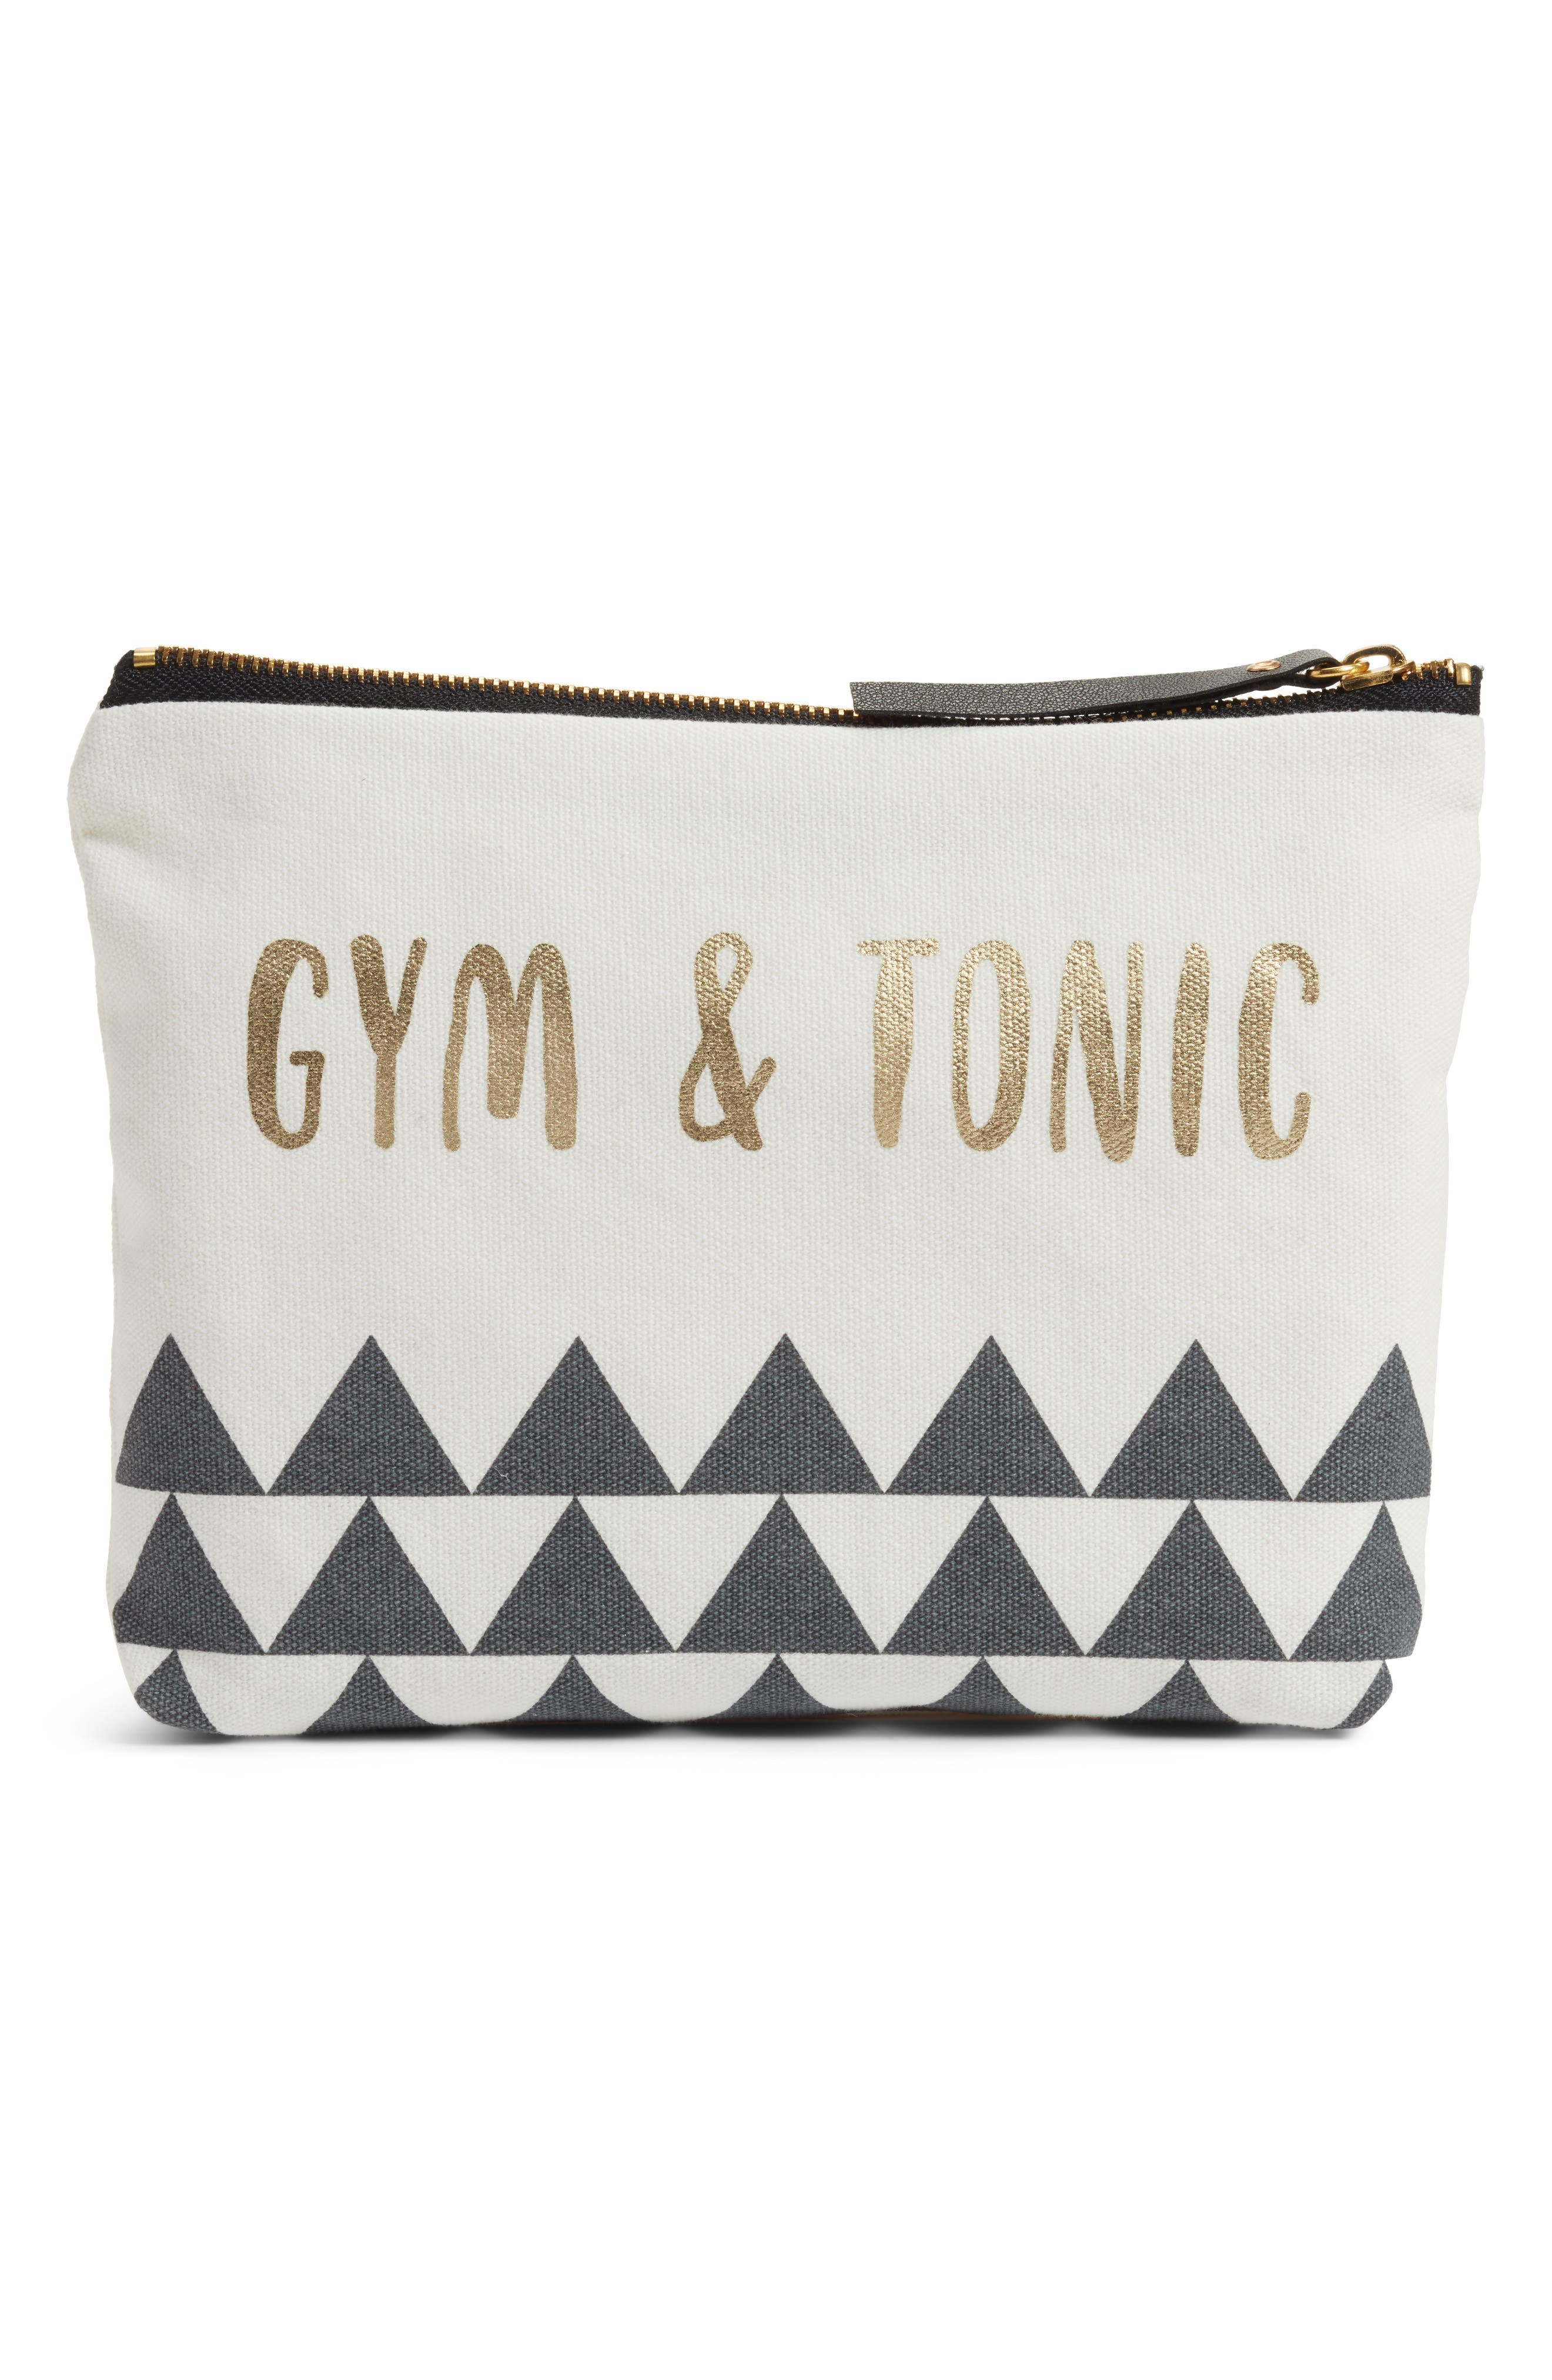 Gym & Tonic Zip Pouch,                         Main,                         color, White